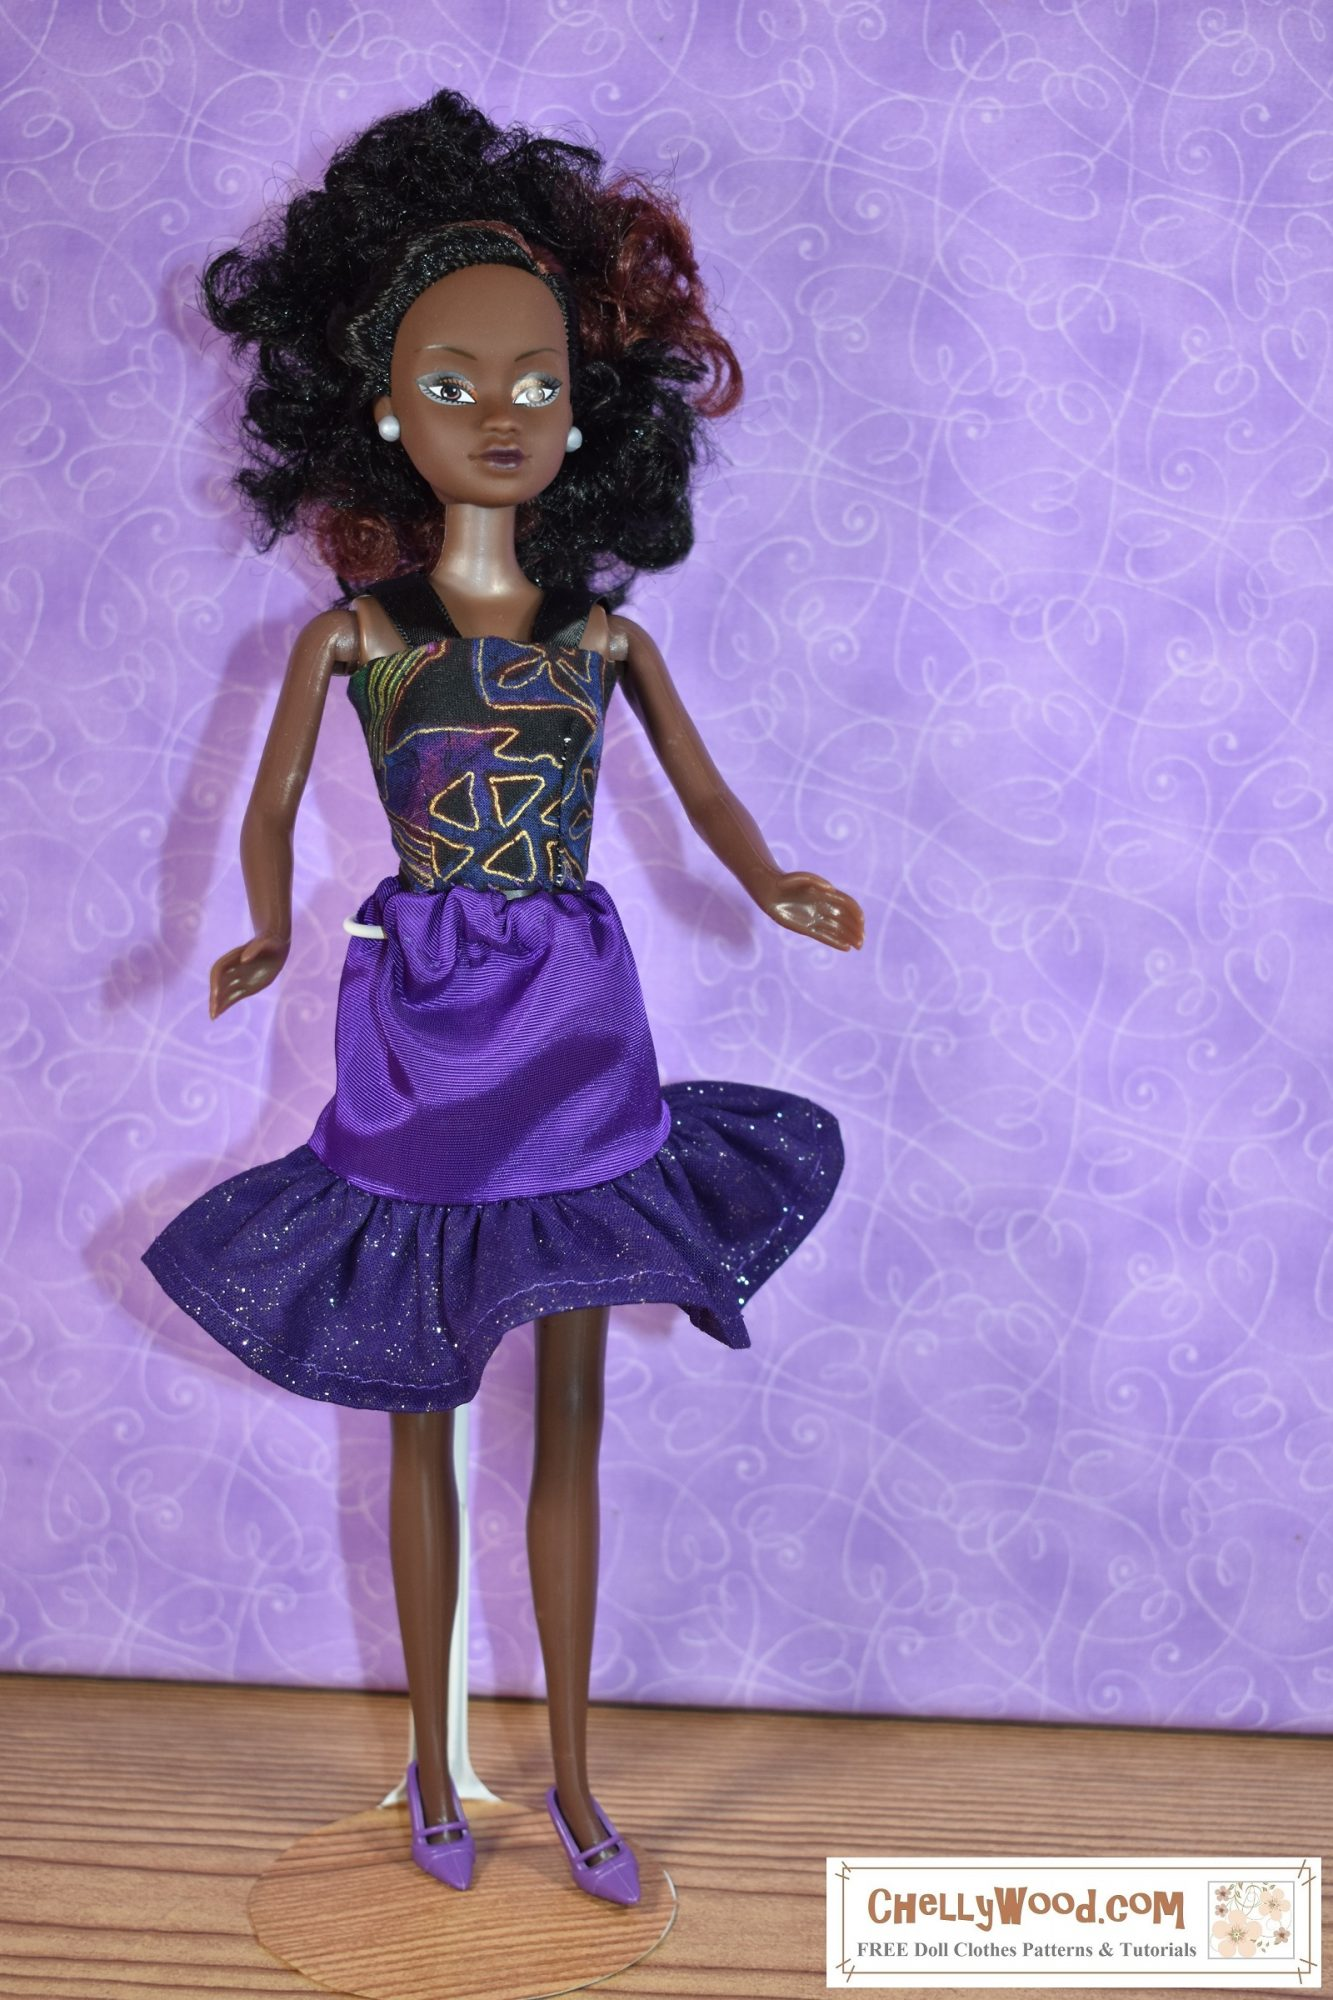 Visit ChellyWood.com for free printable sewing patterns and tutorials for sewing doll clothes to fit dolls of many shapes and sizes. The image shows a Queens of Africa 11 inch fashion doll wearing a handmade pair skirt with a ruffle and a strappy summer top in purple, black, and gold colors. The Queens of Africa dolls can be purchased from the Slice by Cake company at https://queensofafricadolls.com/